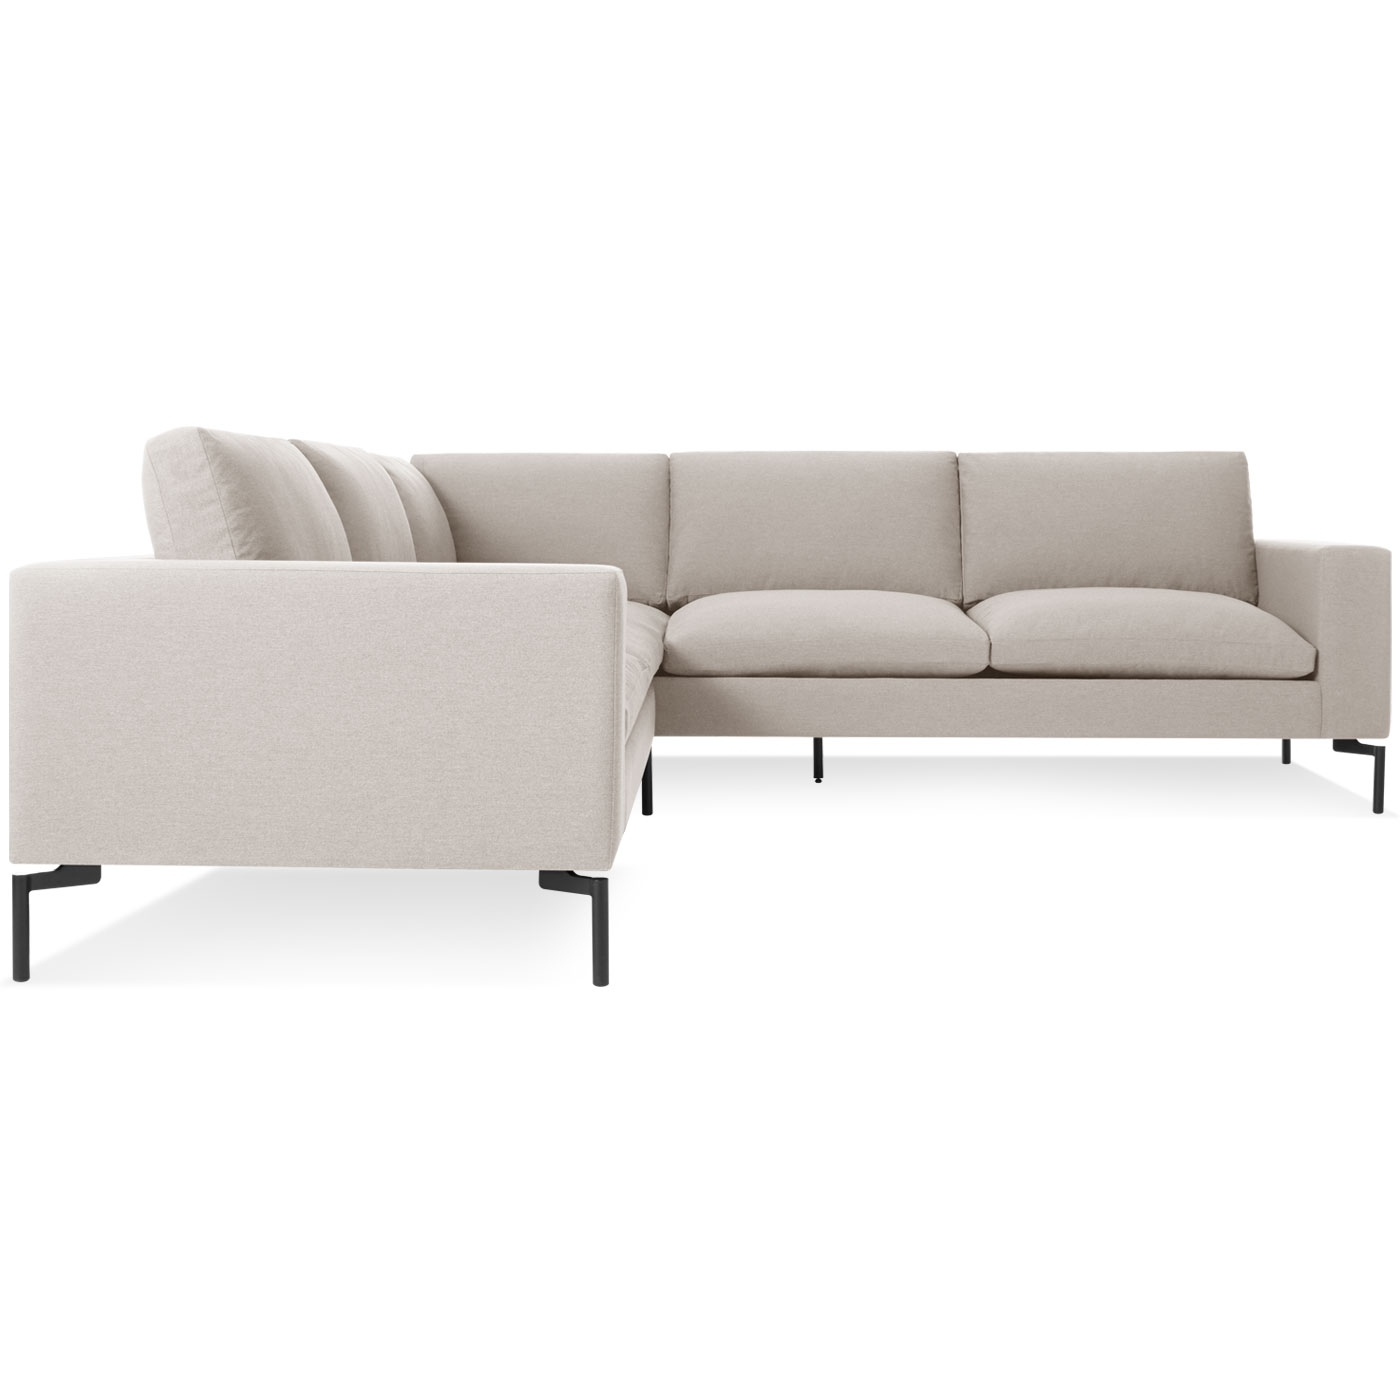 Blu Dot With Fashionable Kijiji Montreal Sectional Sofas (View 4 of 20)